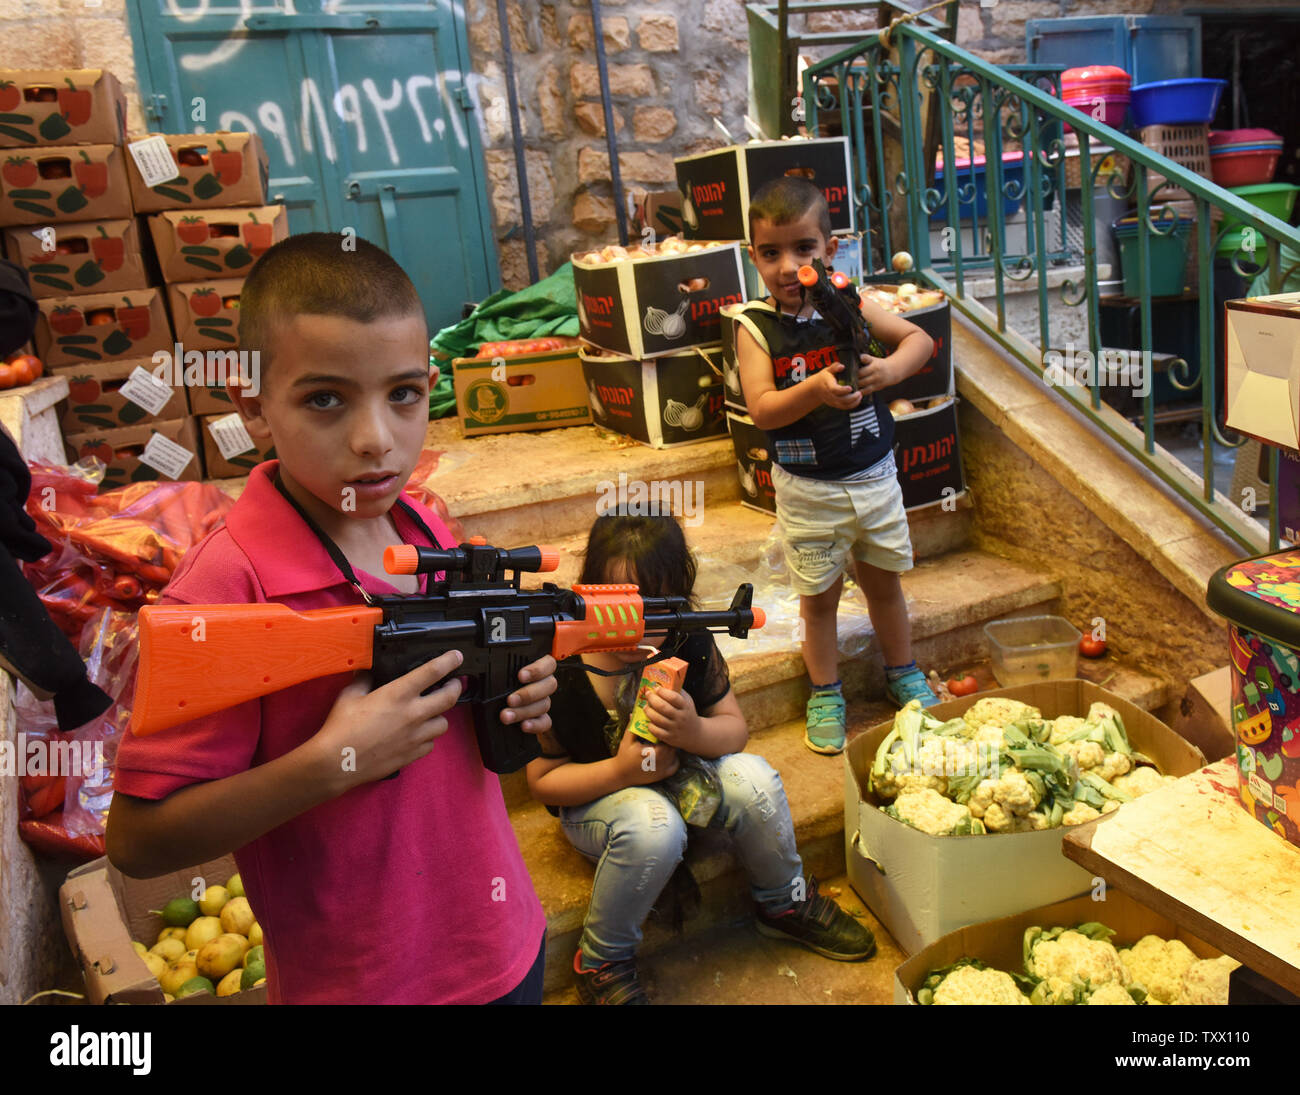 Palestinians play with toy guns before the Islamic holiday of Eid al-Fitr, in the market in Bethlehem, West Bank, June 13, 2018. Muslims around the world will celebrate the three day holiday of  Eid al-Fitr ,which marks the end of the Muslim holy month of fasting Ramadan.  Photo by Debbie Hill/UPI - Stock Image